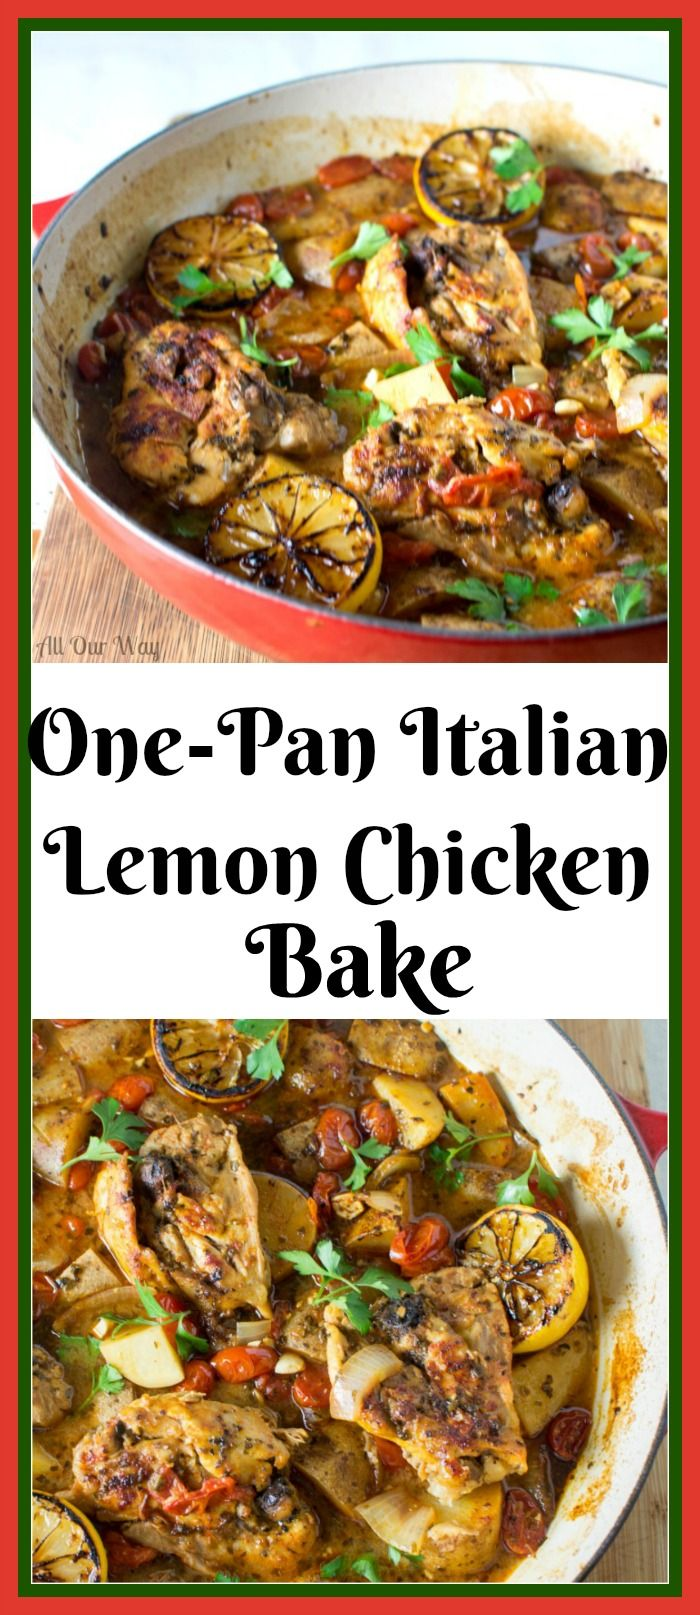 One-Pan Italian Garlic Lemon Chicken Bake-A Complete Meal